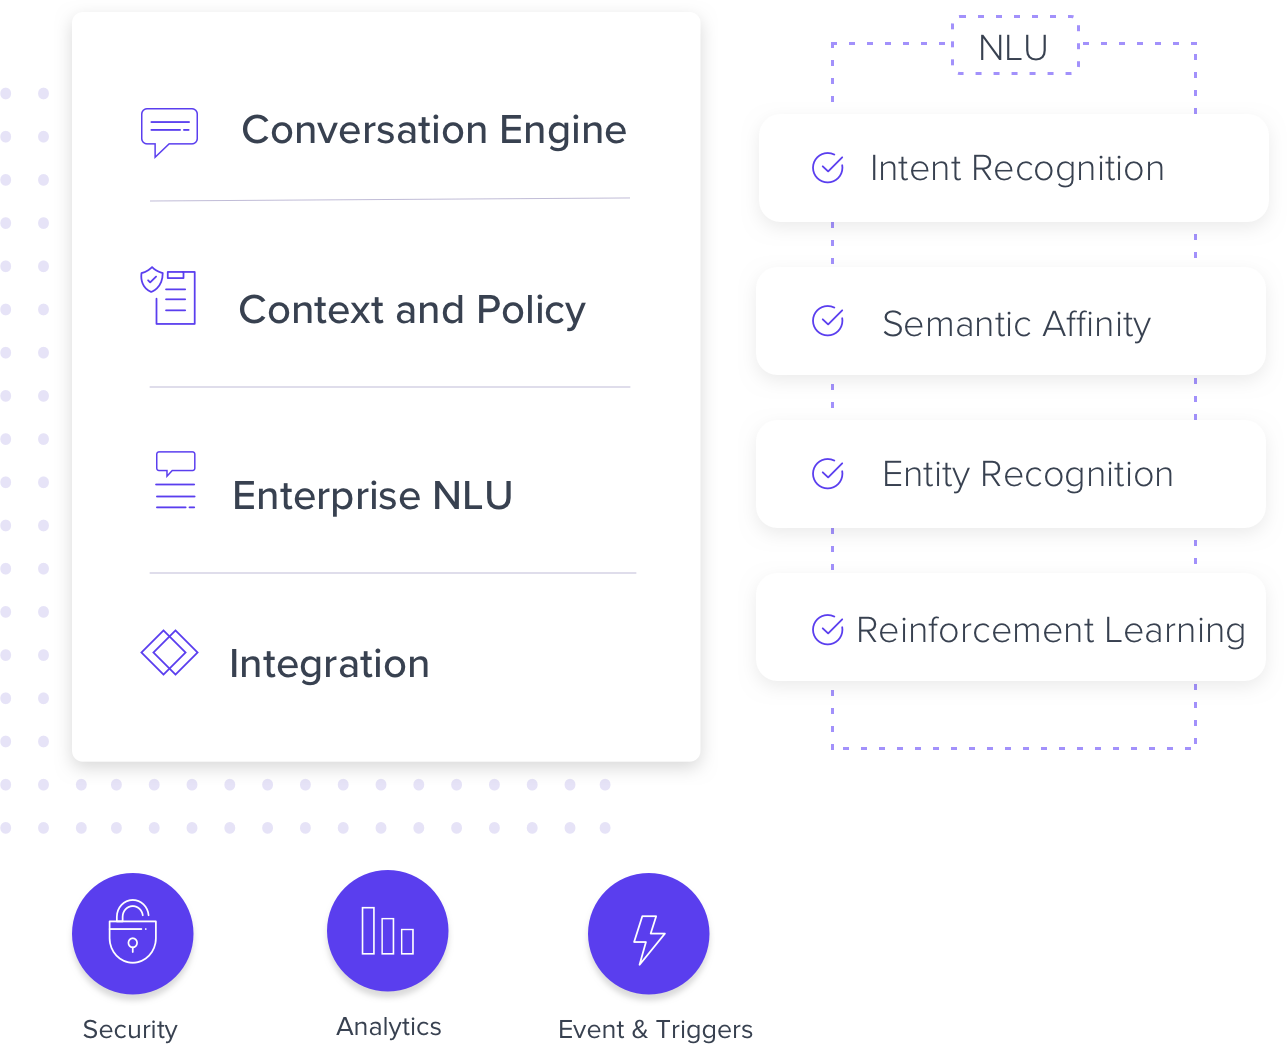 Customer Service Automation: An automated support platform using intelligent AI